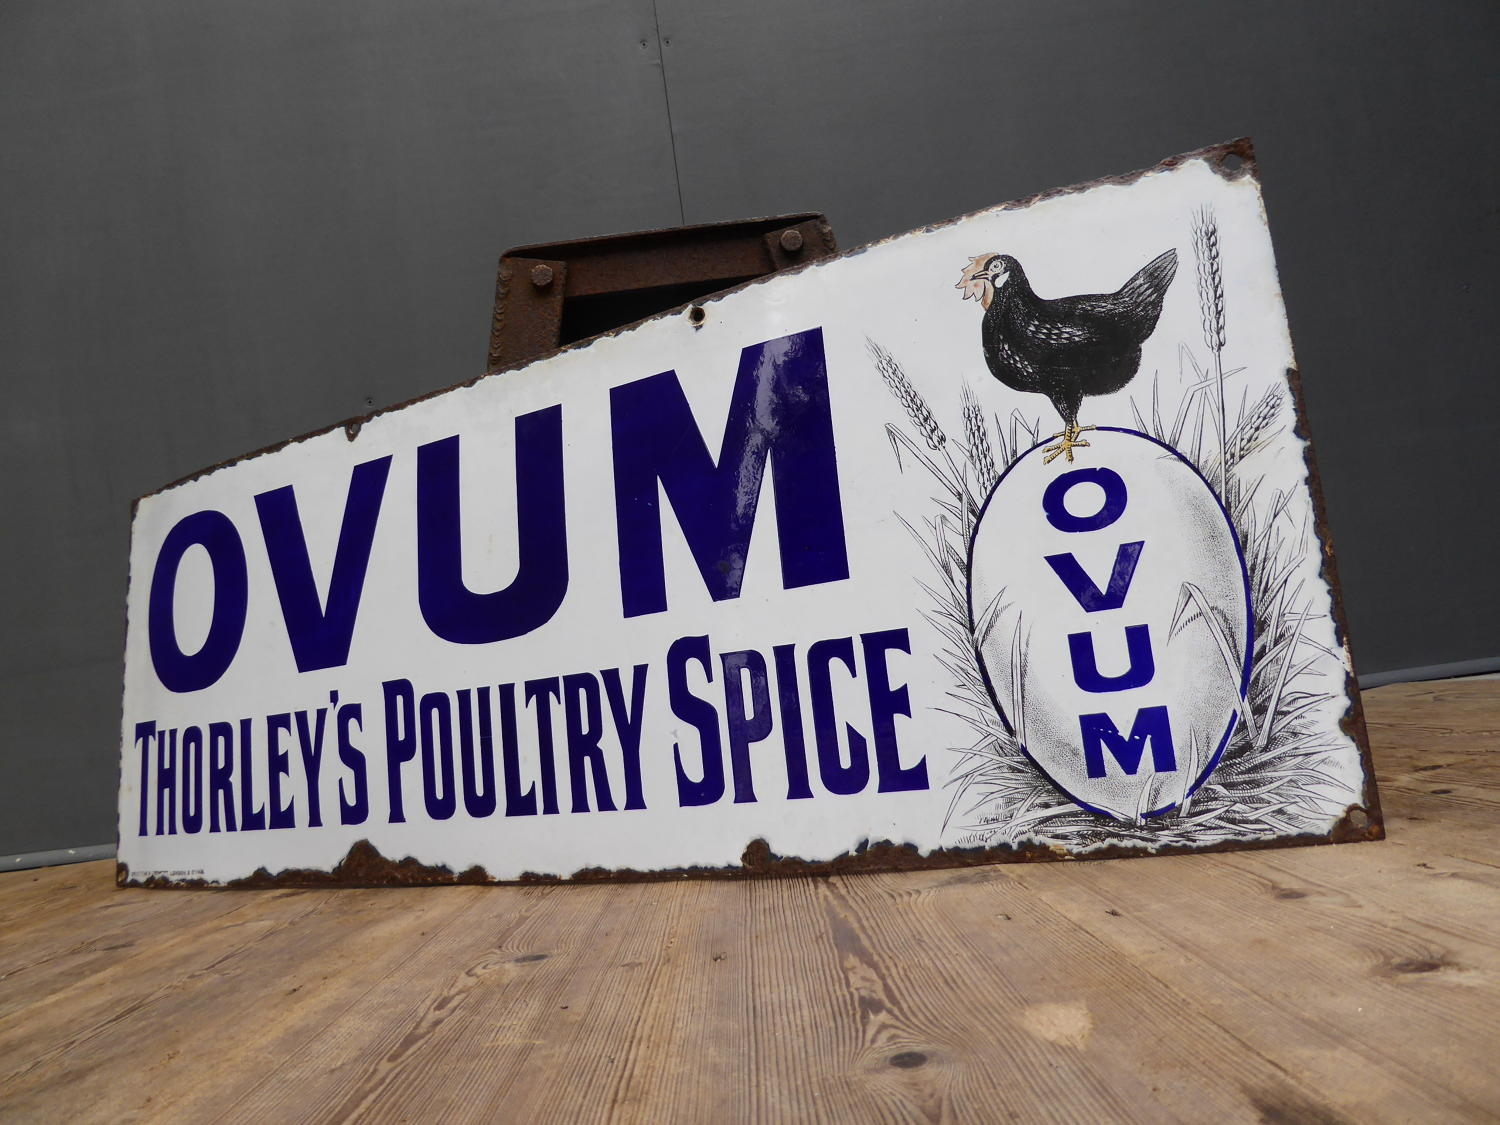 Thorleys Poultry Spice Pictorial Enamel Sign